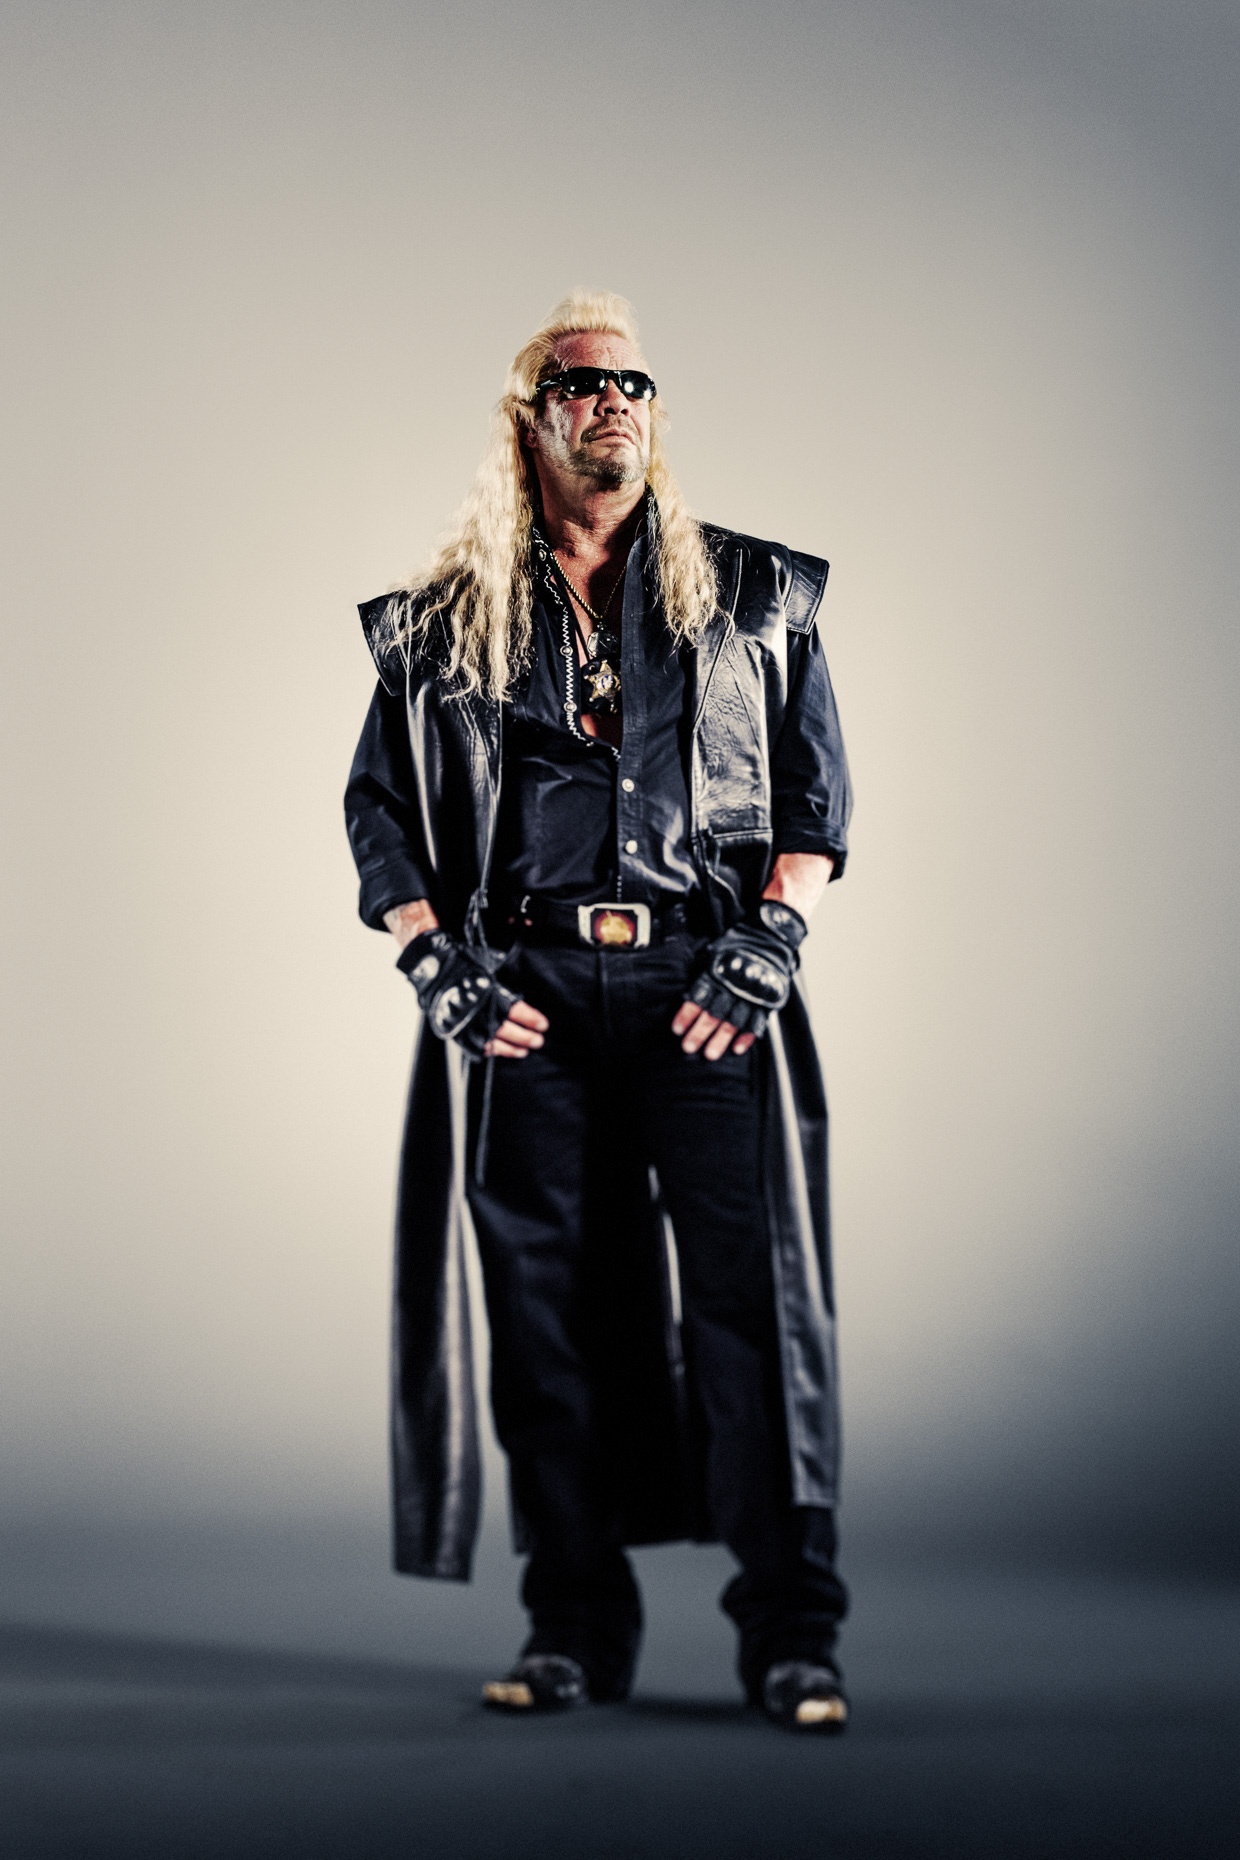 Full body editorial portrait of Dog the Bounty Hunter in all leather and his signature boots for CMT reality tv by Andy Batt